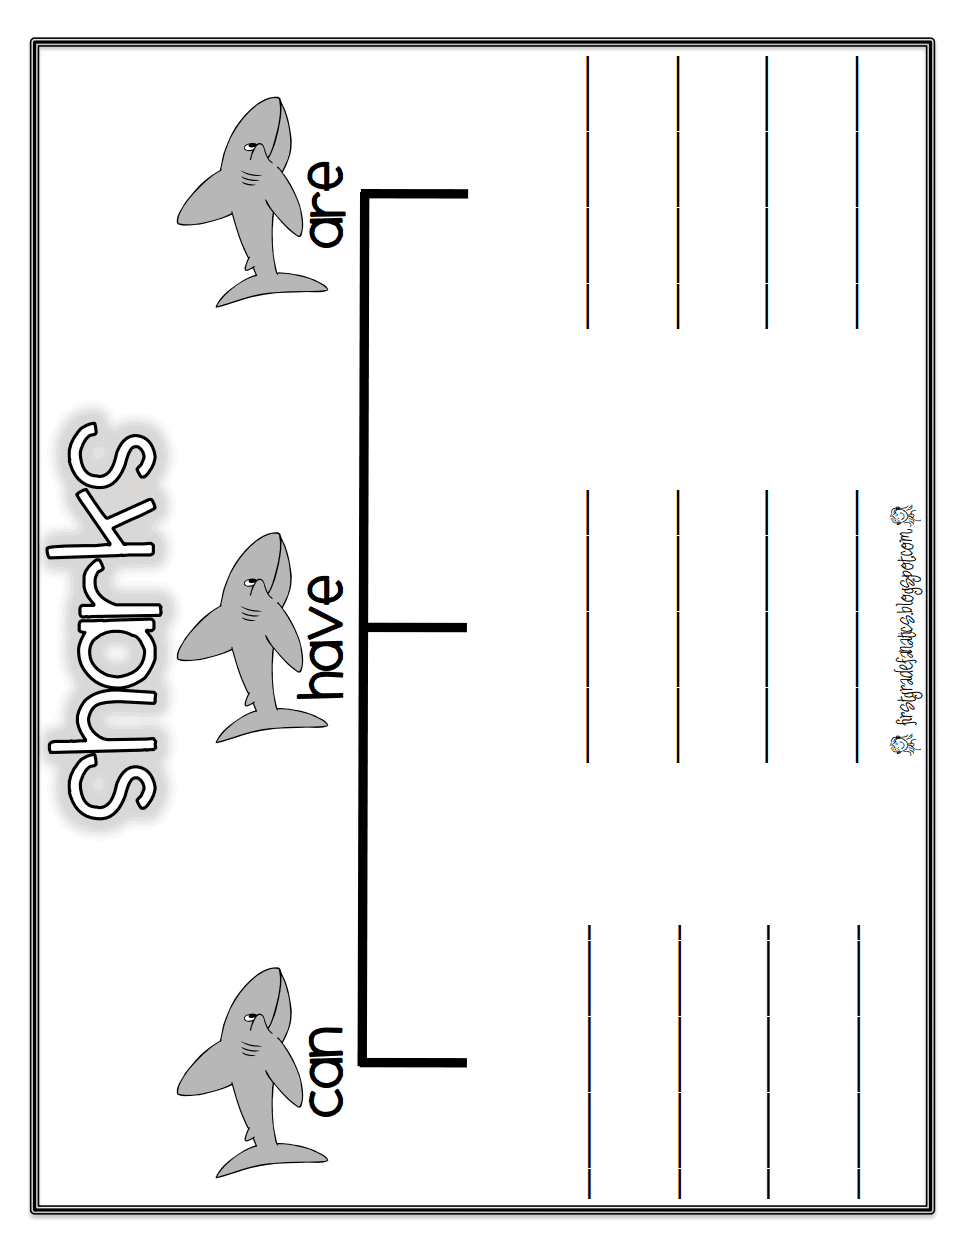 Shark 4th Grade Math Worksheet. Shark. Best Free Printable